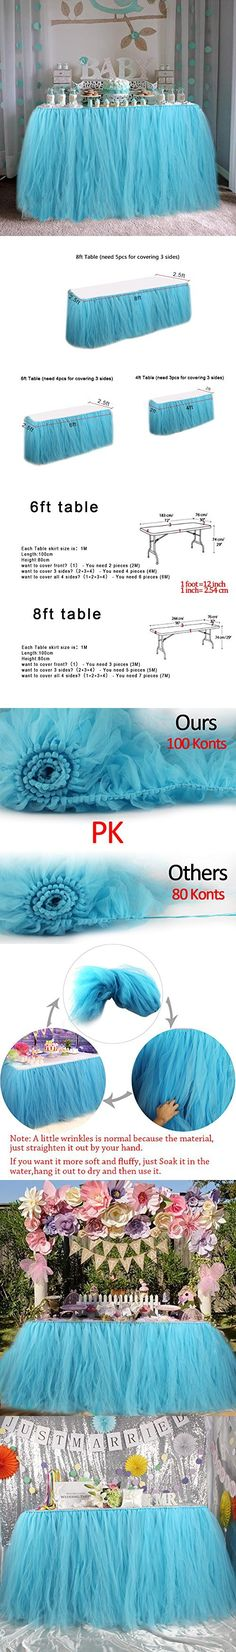 AerWo Tutu Table Skirts Tulle Queen Snowflake Wonderland Tutu Table Cloth for Girl Princess Party Baby Shower Wedding Birthday Parties Decoration Aqua Blue